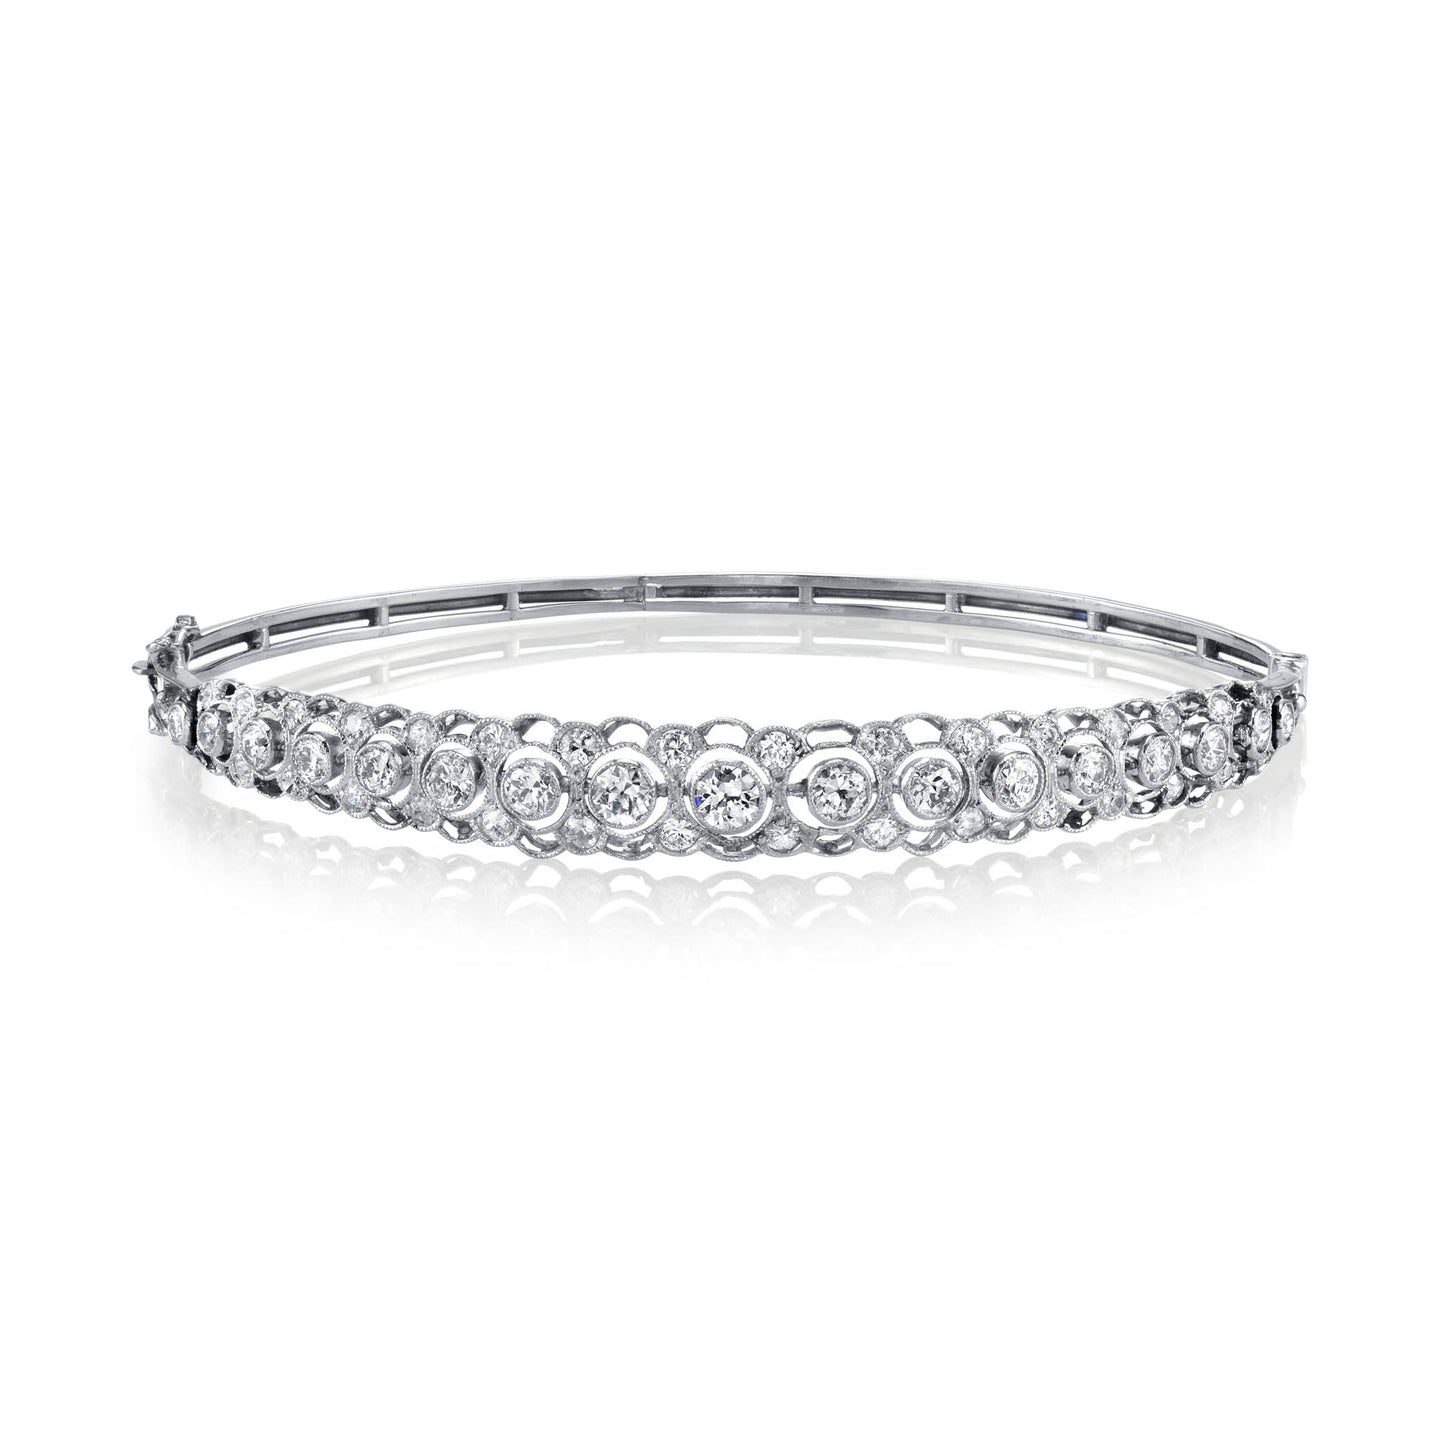 Edwardian Diamond Bangle